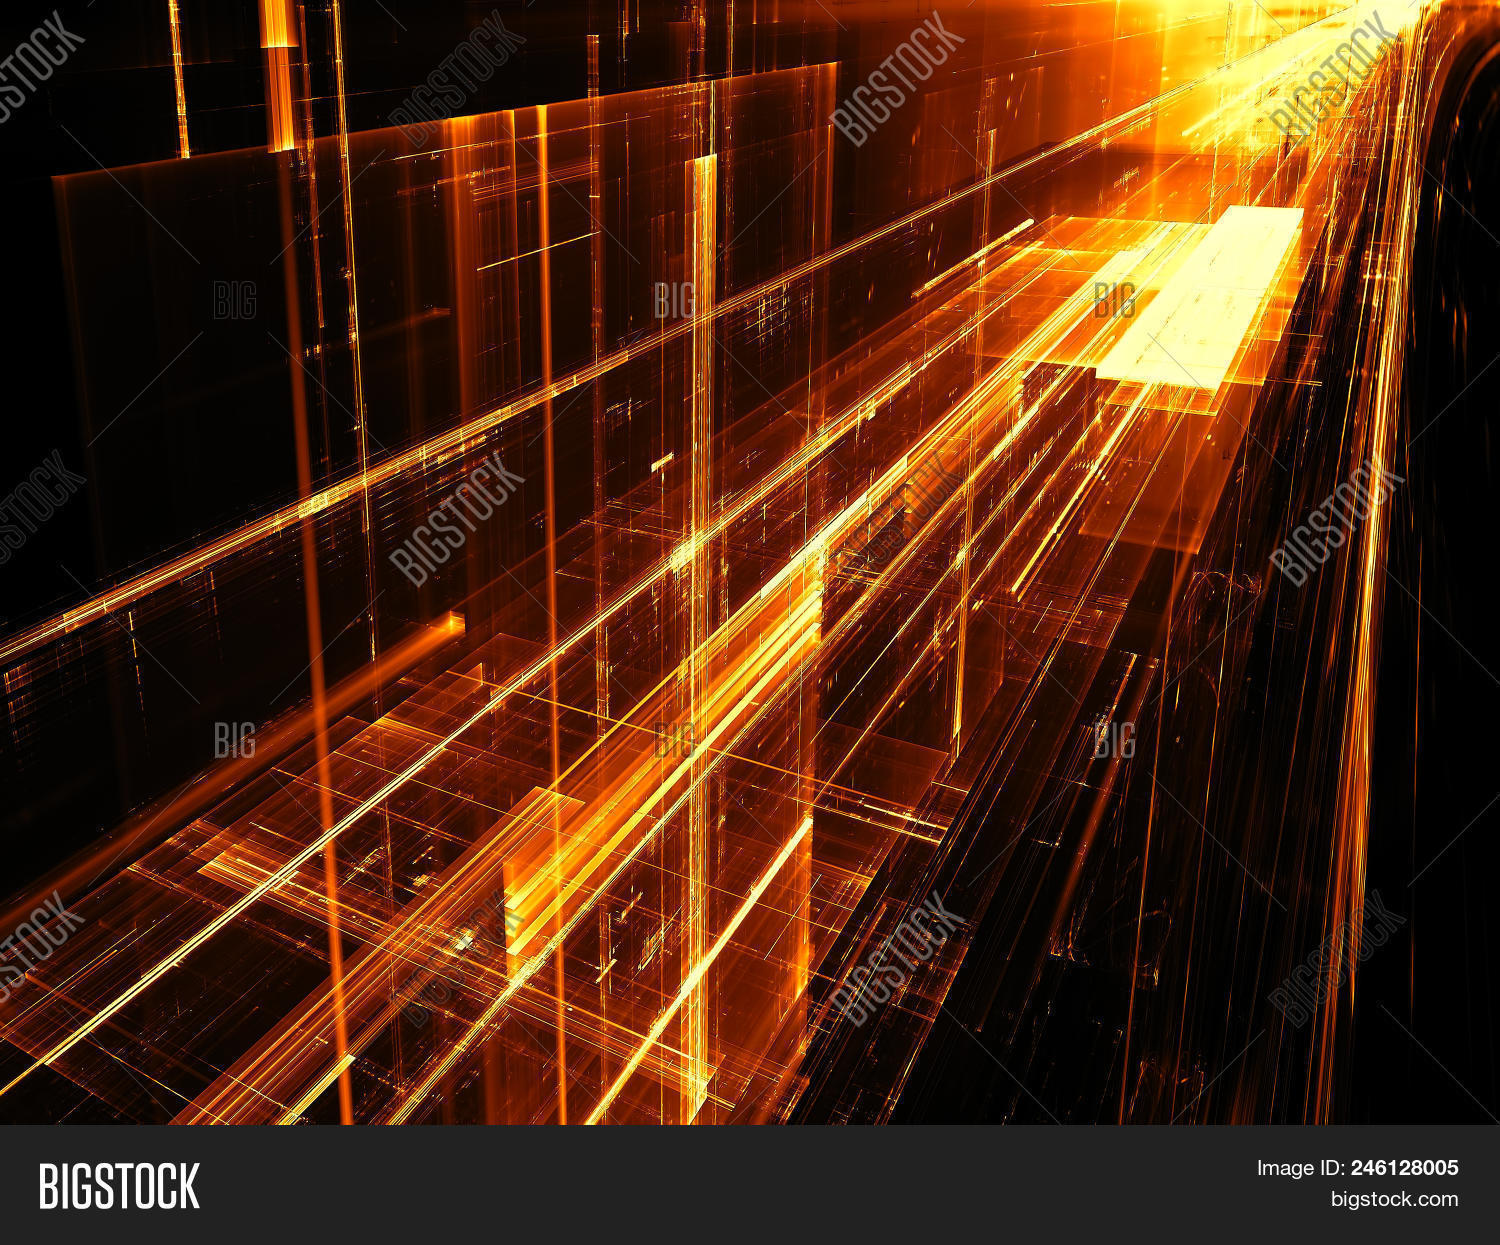 🔥 Summary Golden Fractal Background - Pc-generated 3d